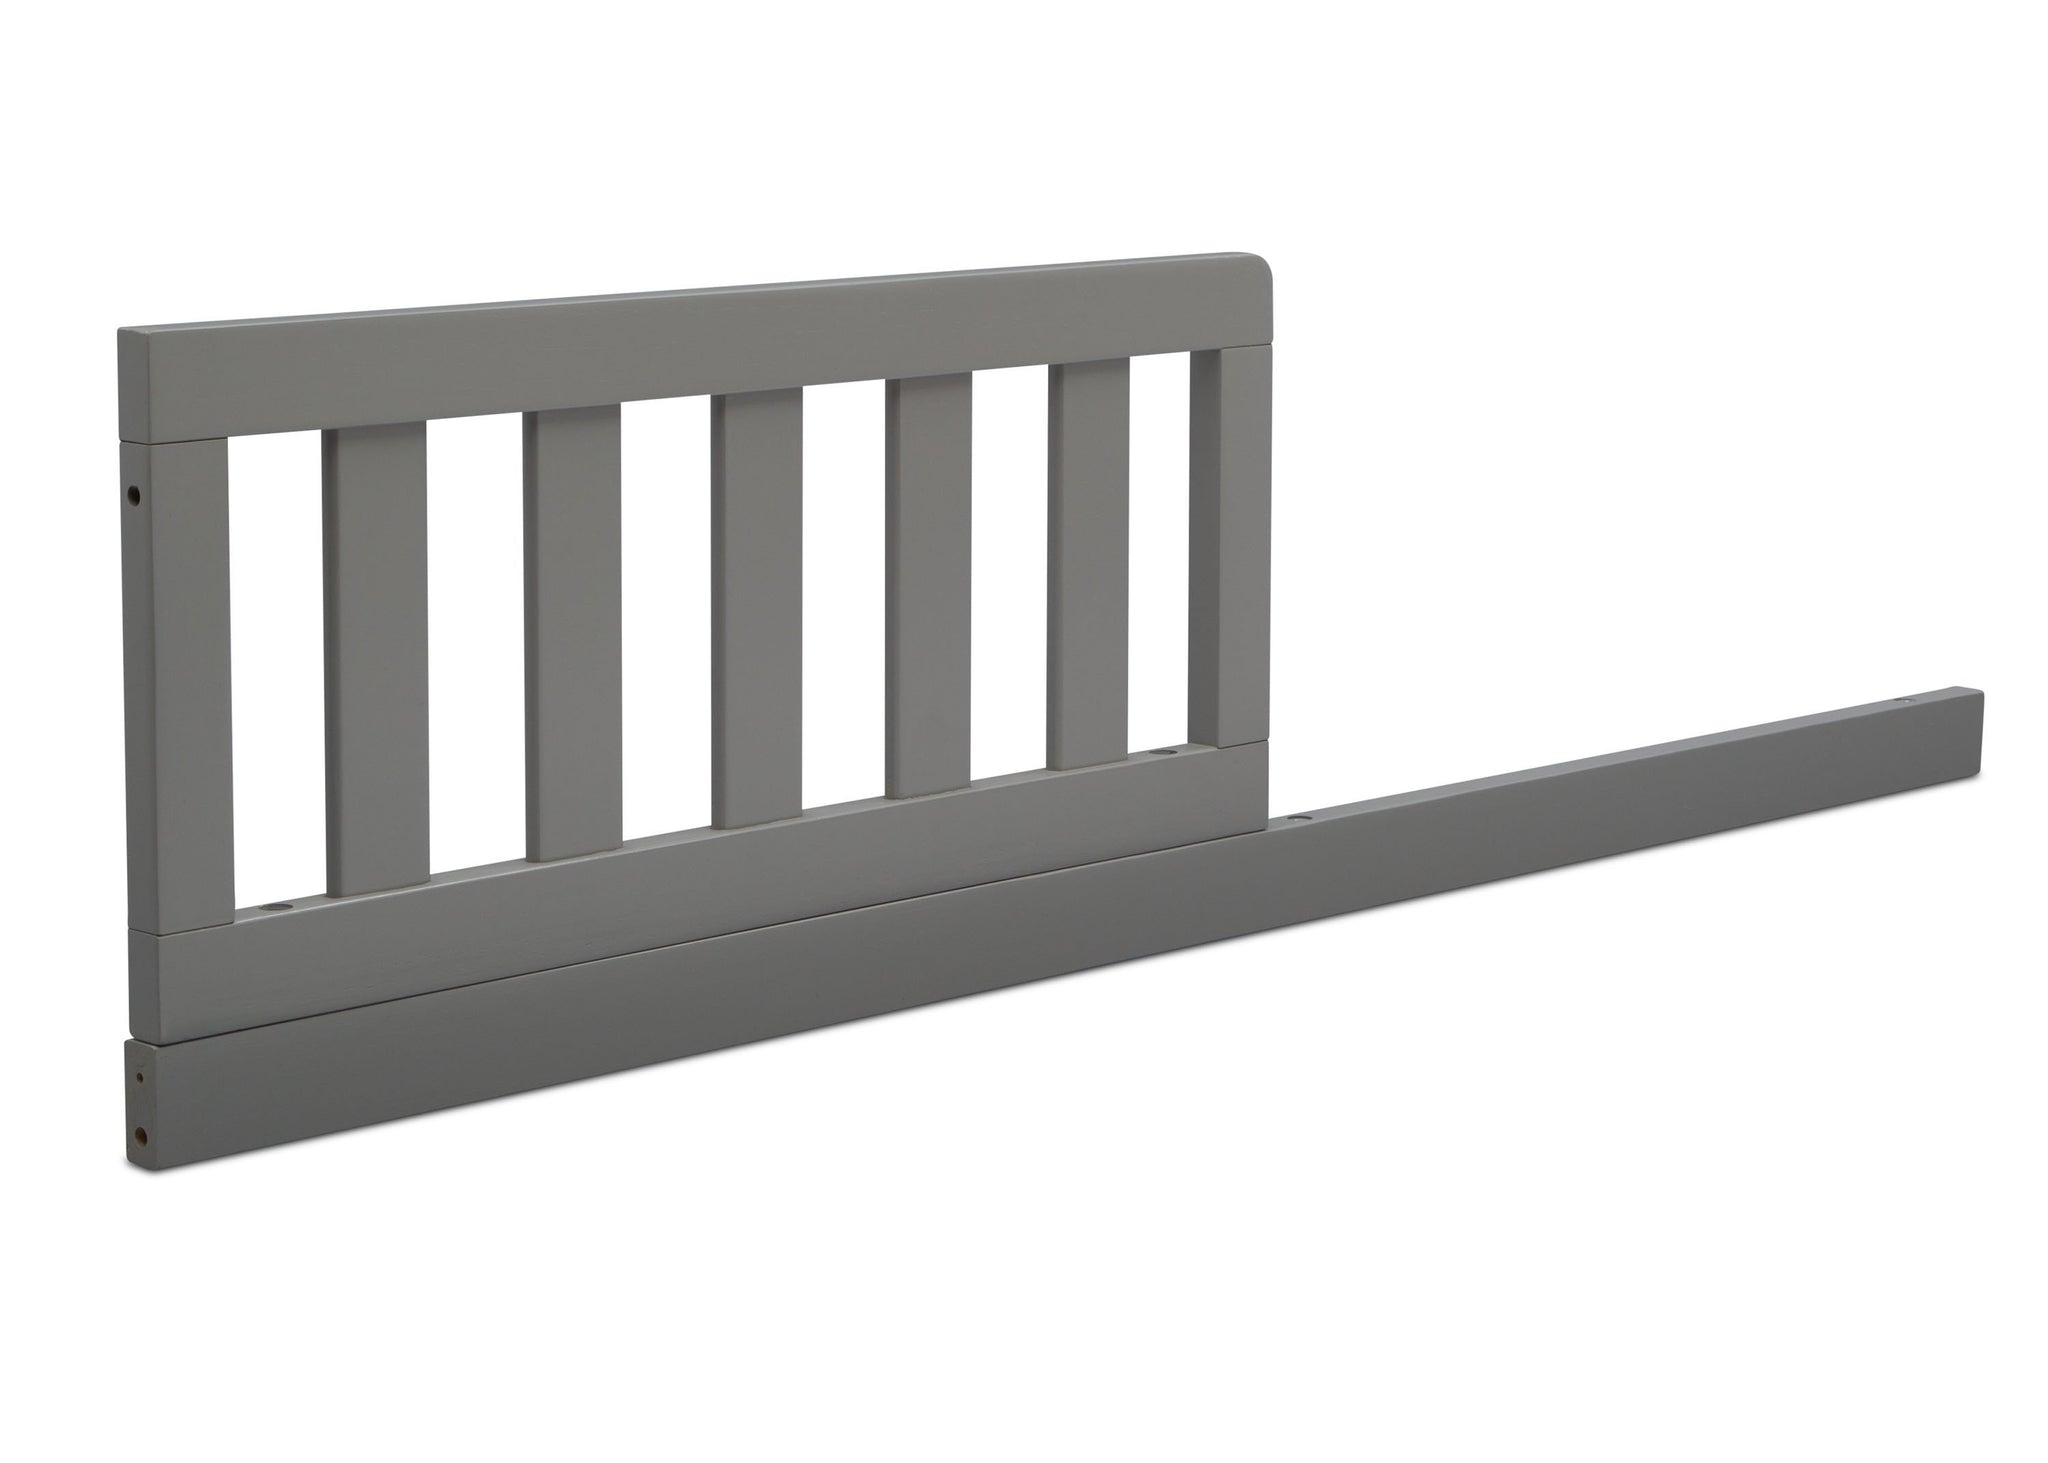 Serta Daybed/Toddler Guardrail Kit (707725) Grey (026) Angle a2a